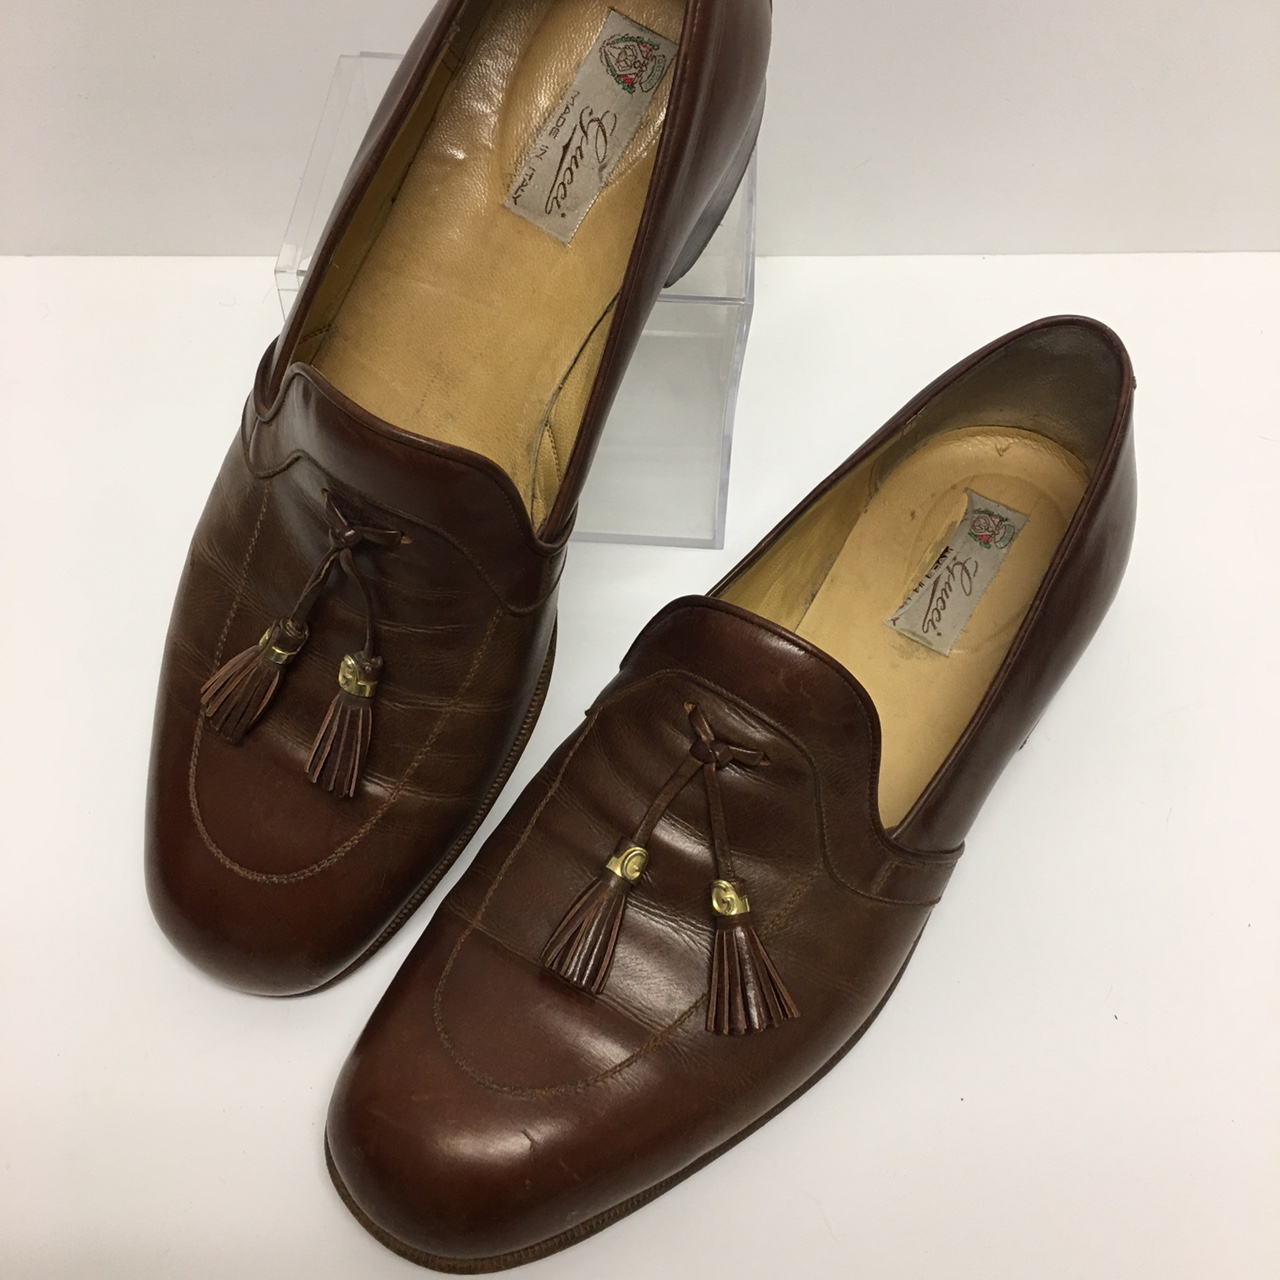 Product Image 1 - Vintage leather Gucci loafers Gold tone